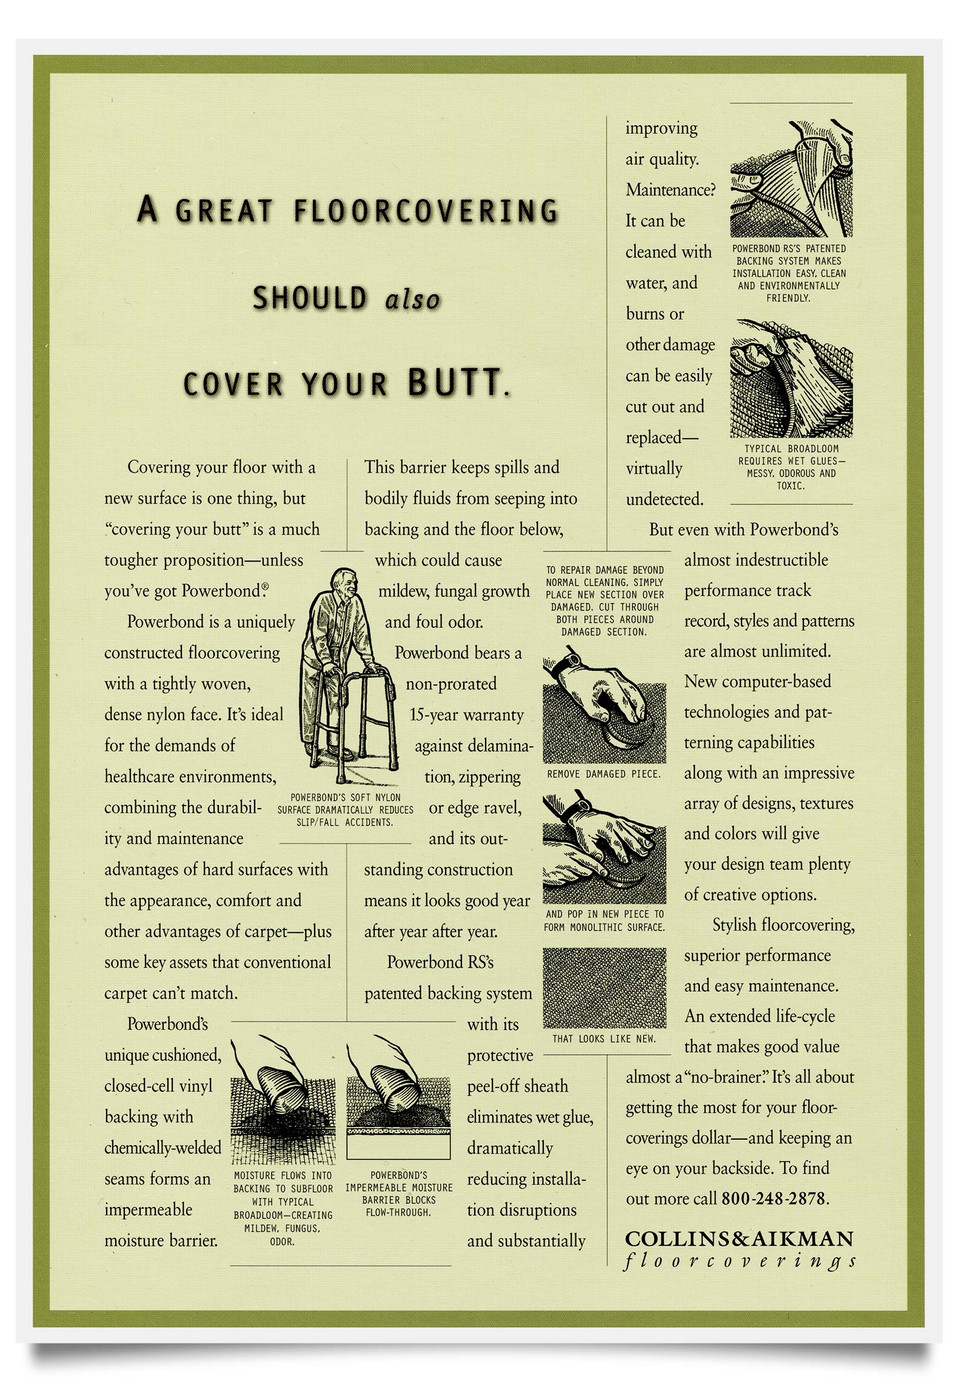 Cover Your Butt